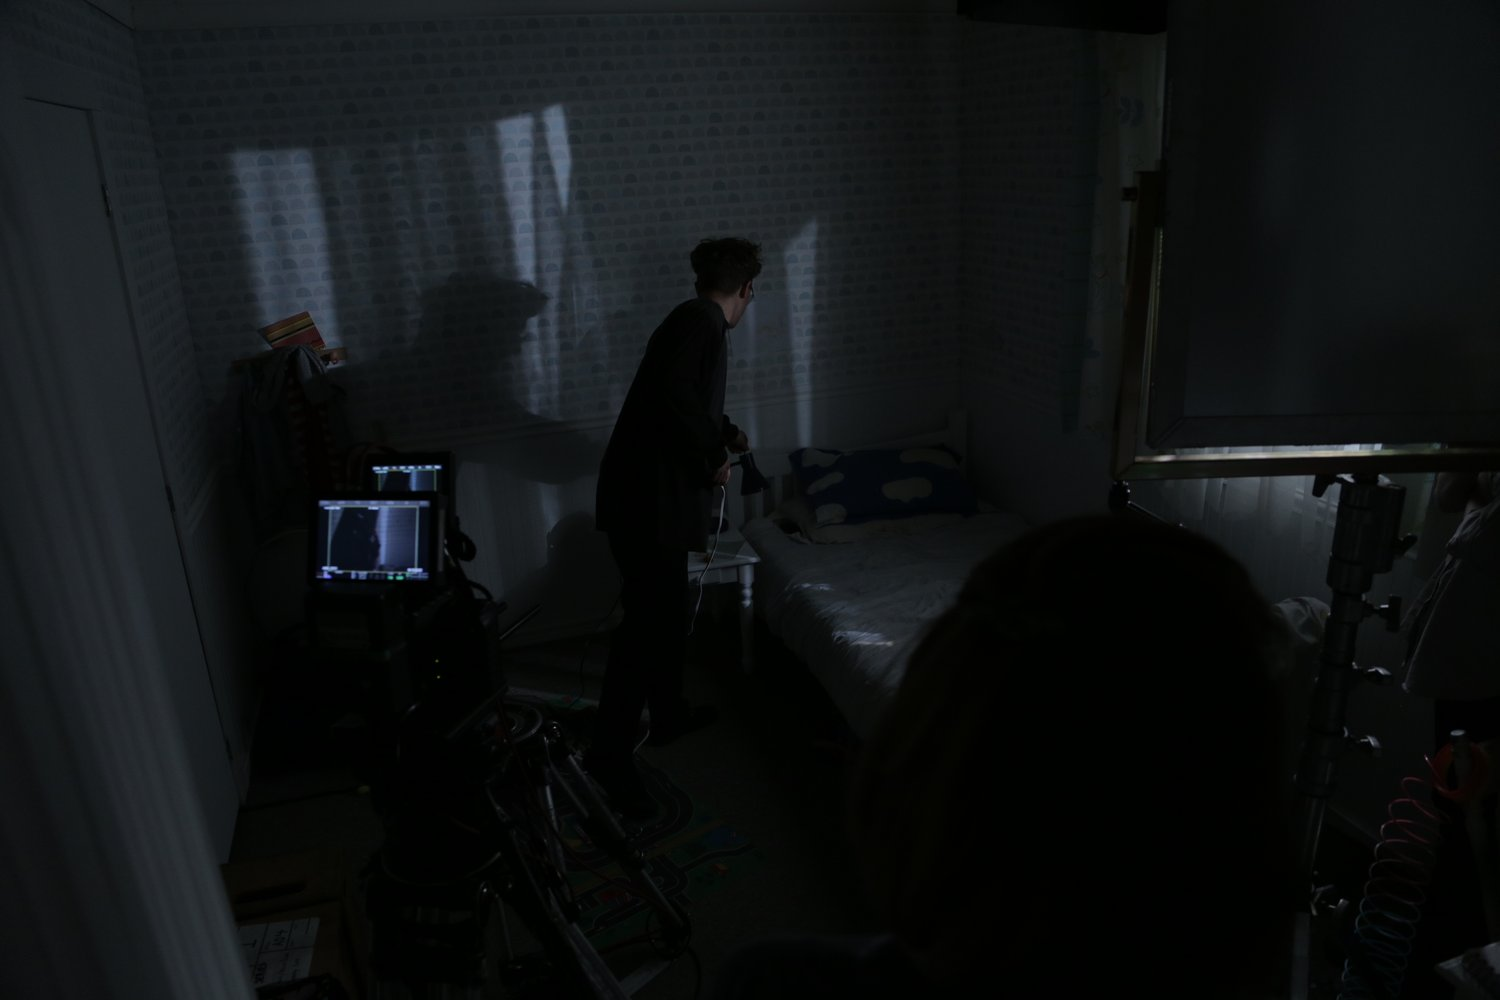 Cinematographer Jeremy Cox setting up for a nighttime shot.